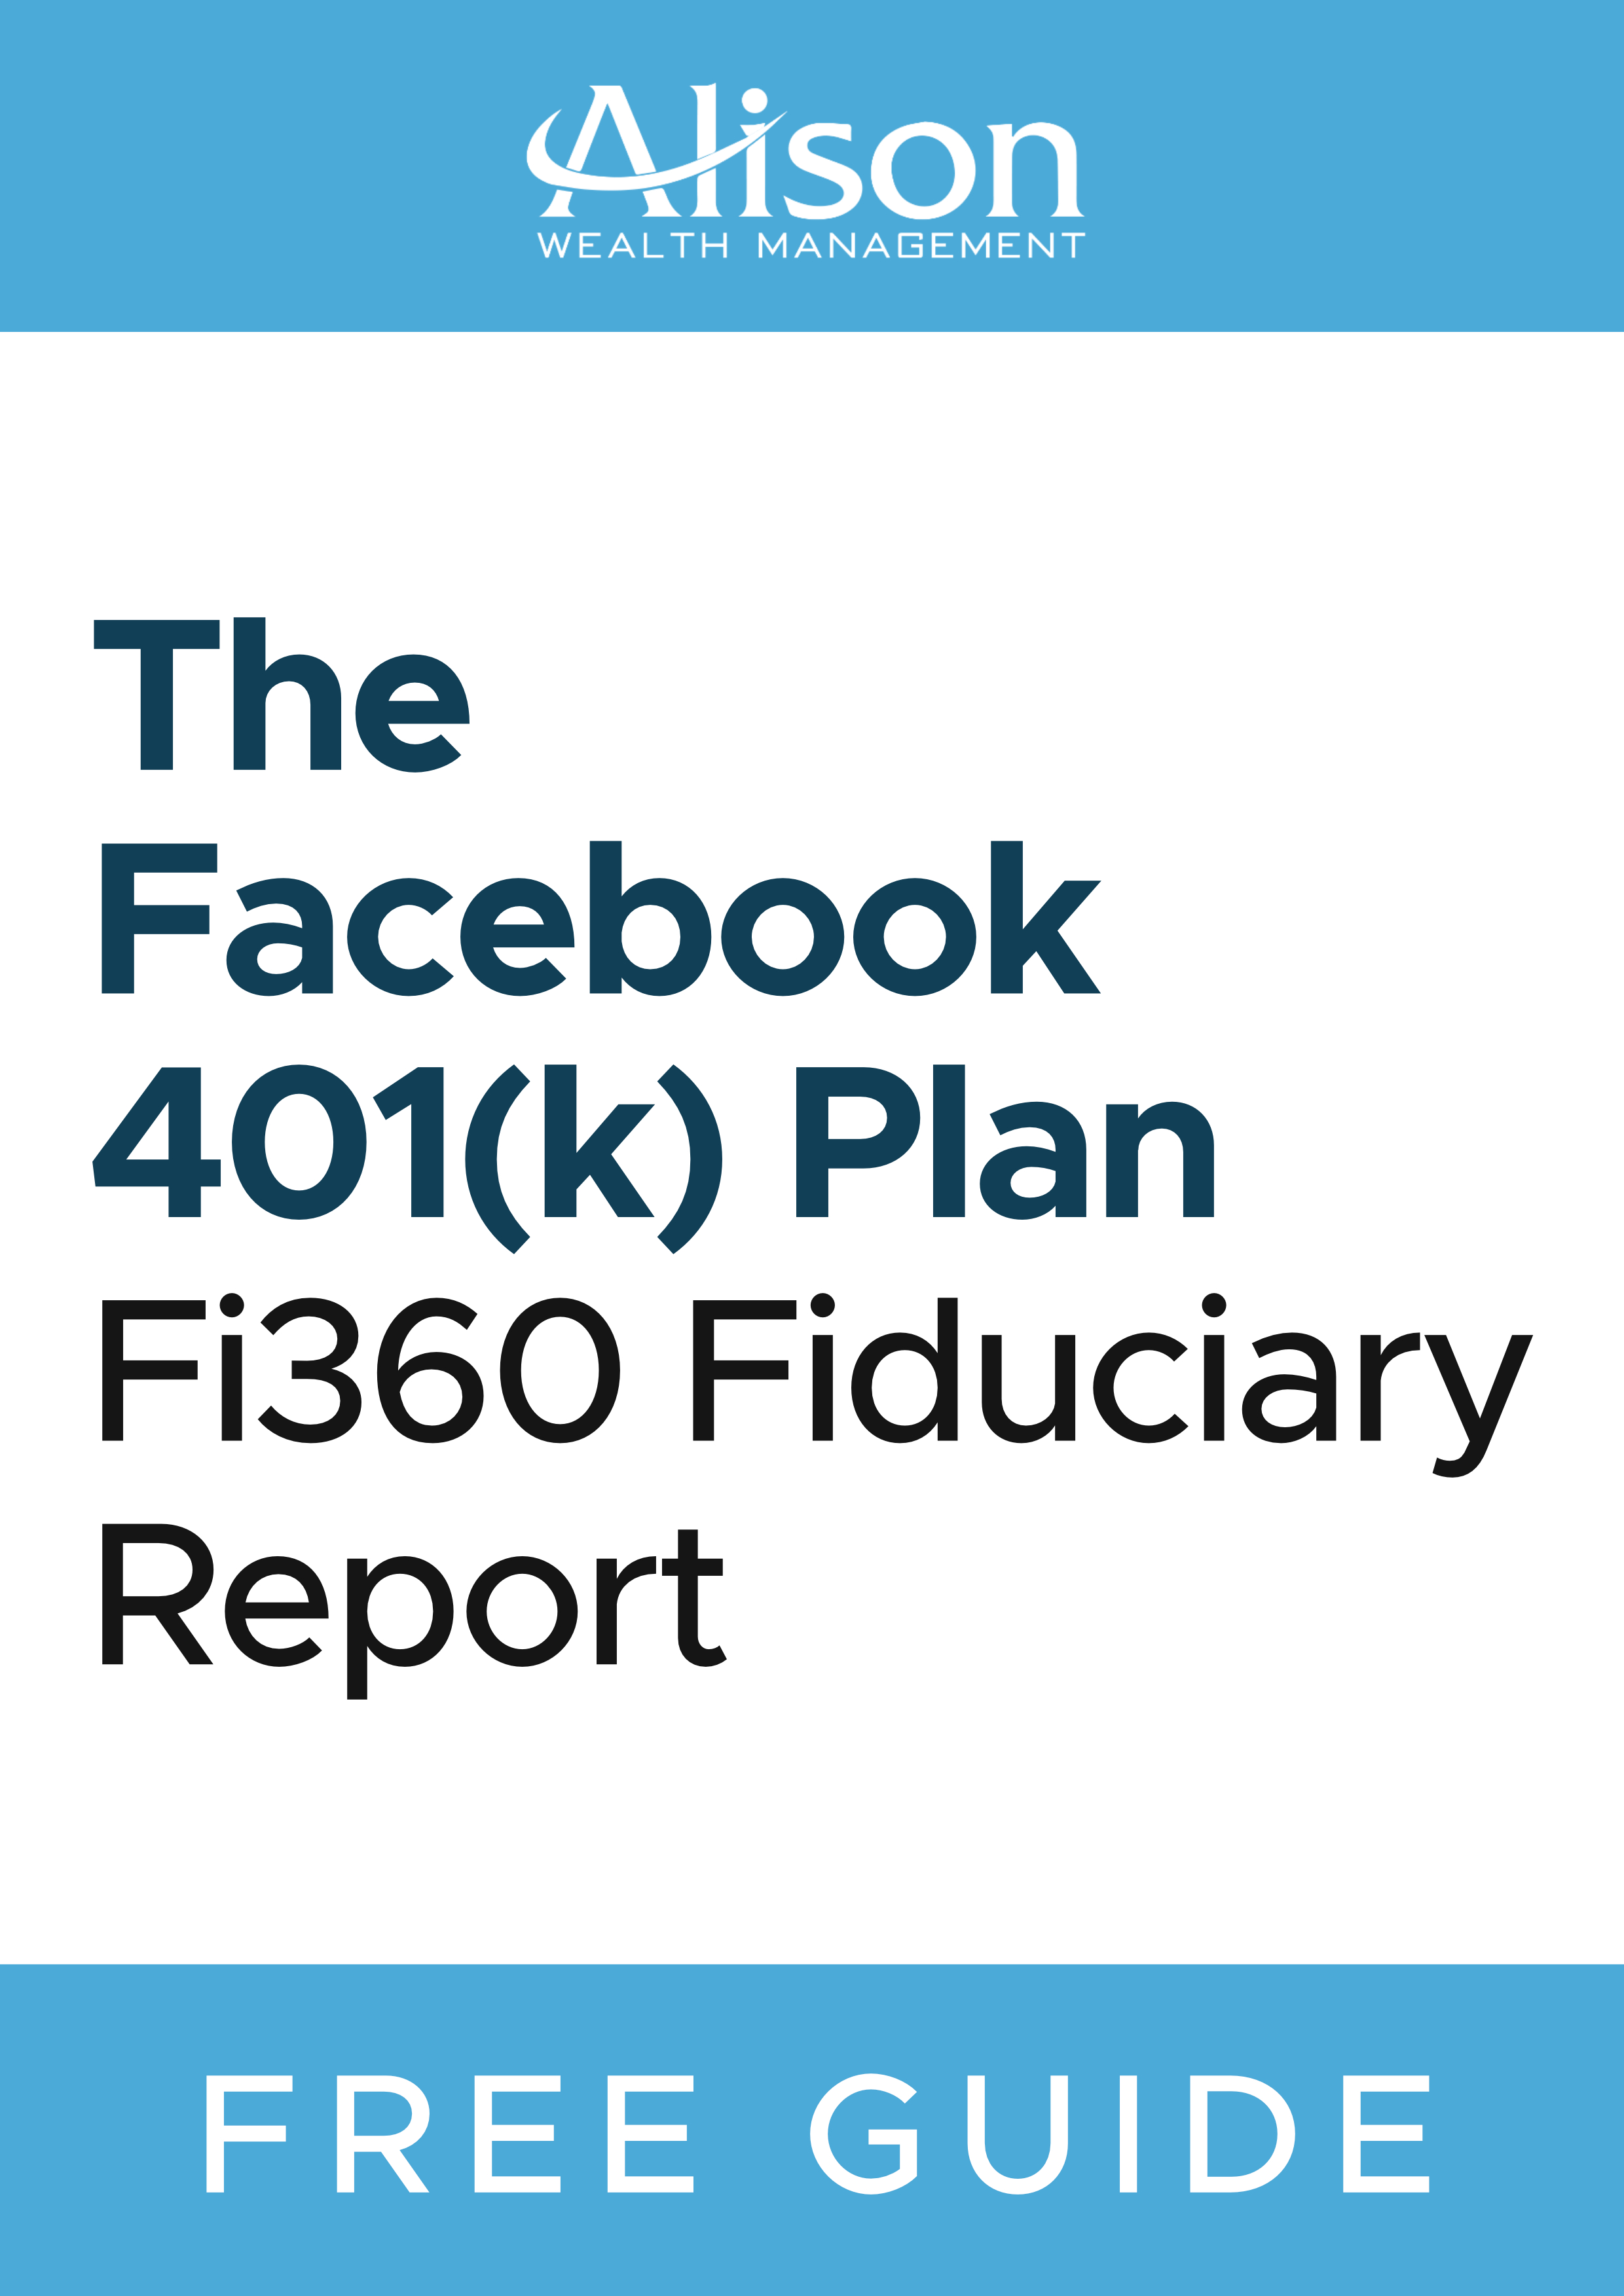 For A Detailed Analysis On All Facebook 401k Plan Investments Download